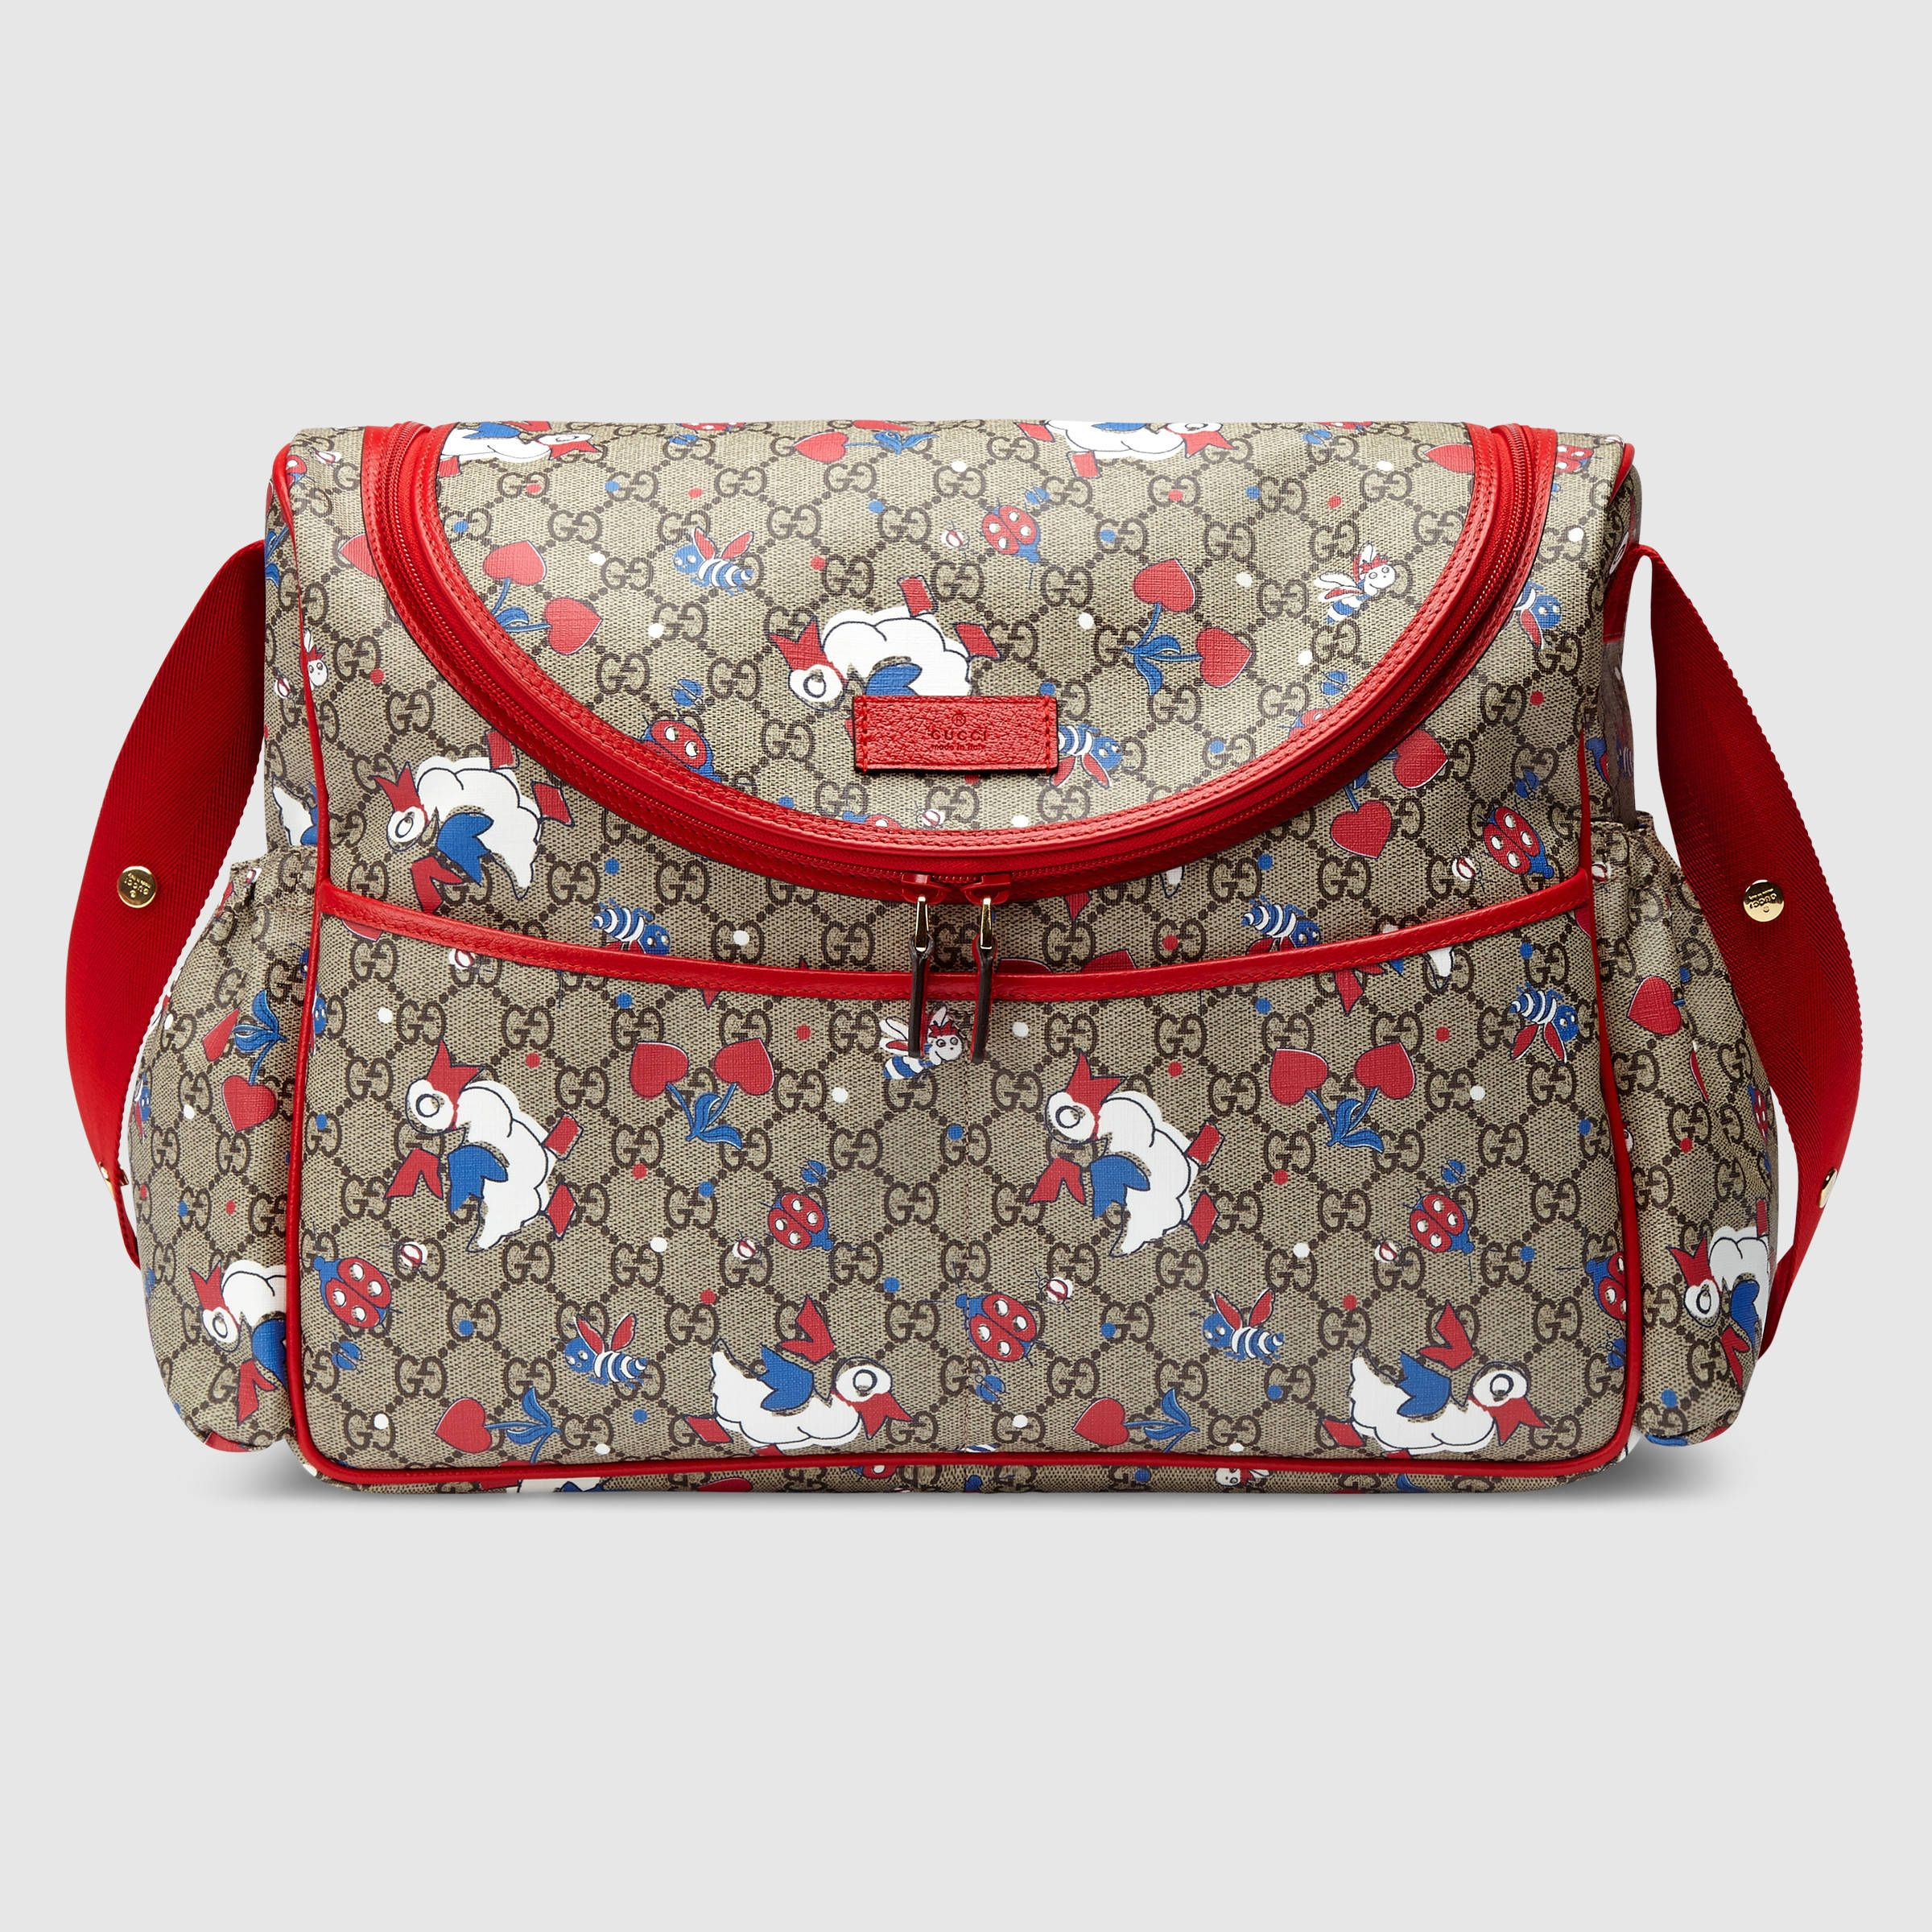 824454ab5a0436 GG ducks diaper bag - Gucci Diaper Bags & Totes 123326K9E4G9291 | A ...